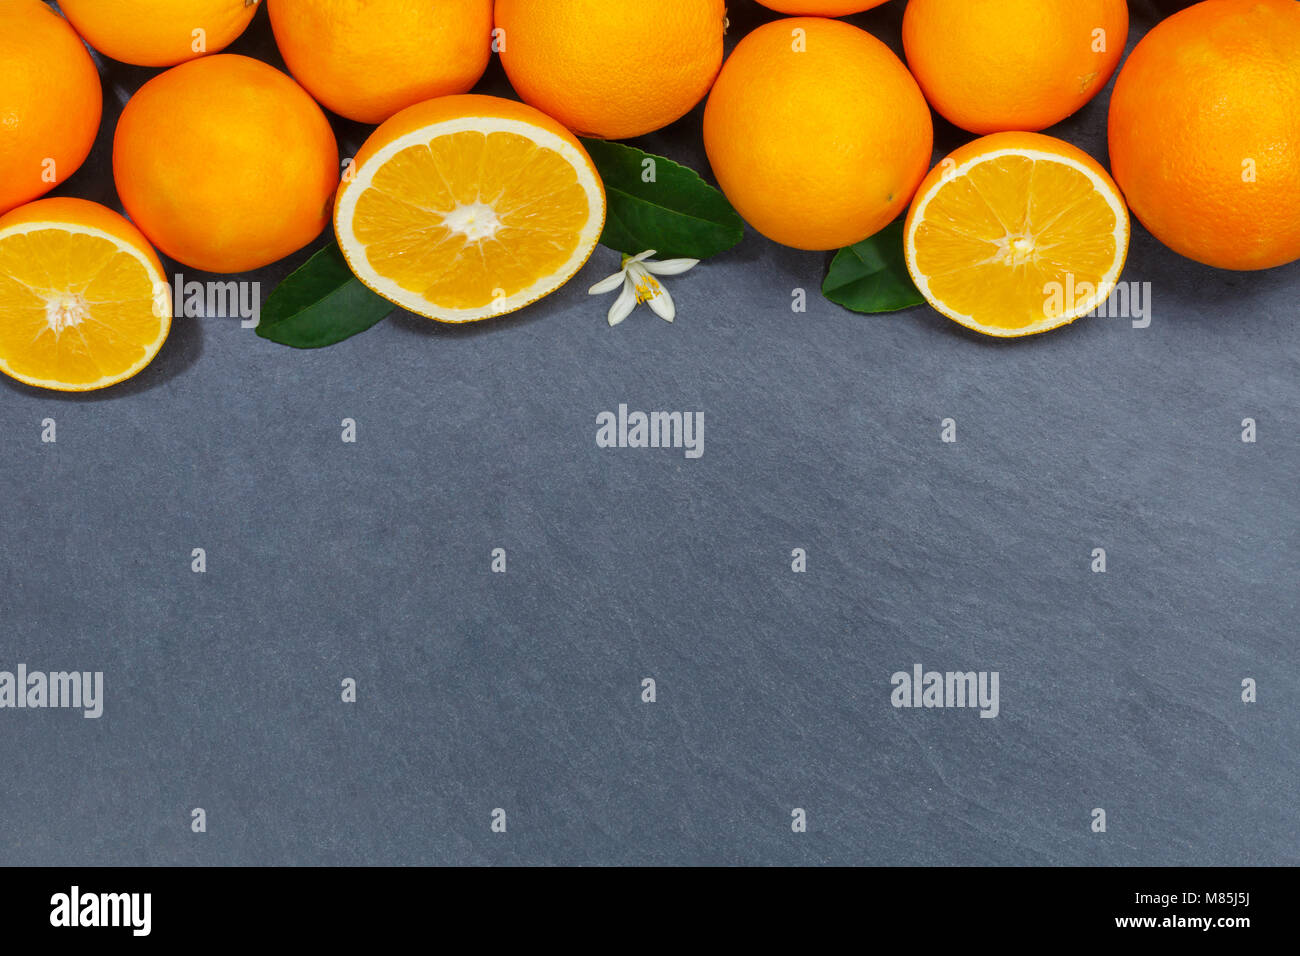 Oranges orange fruits slate copyspace top view from above - Stock Image